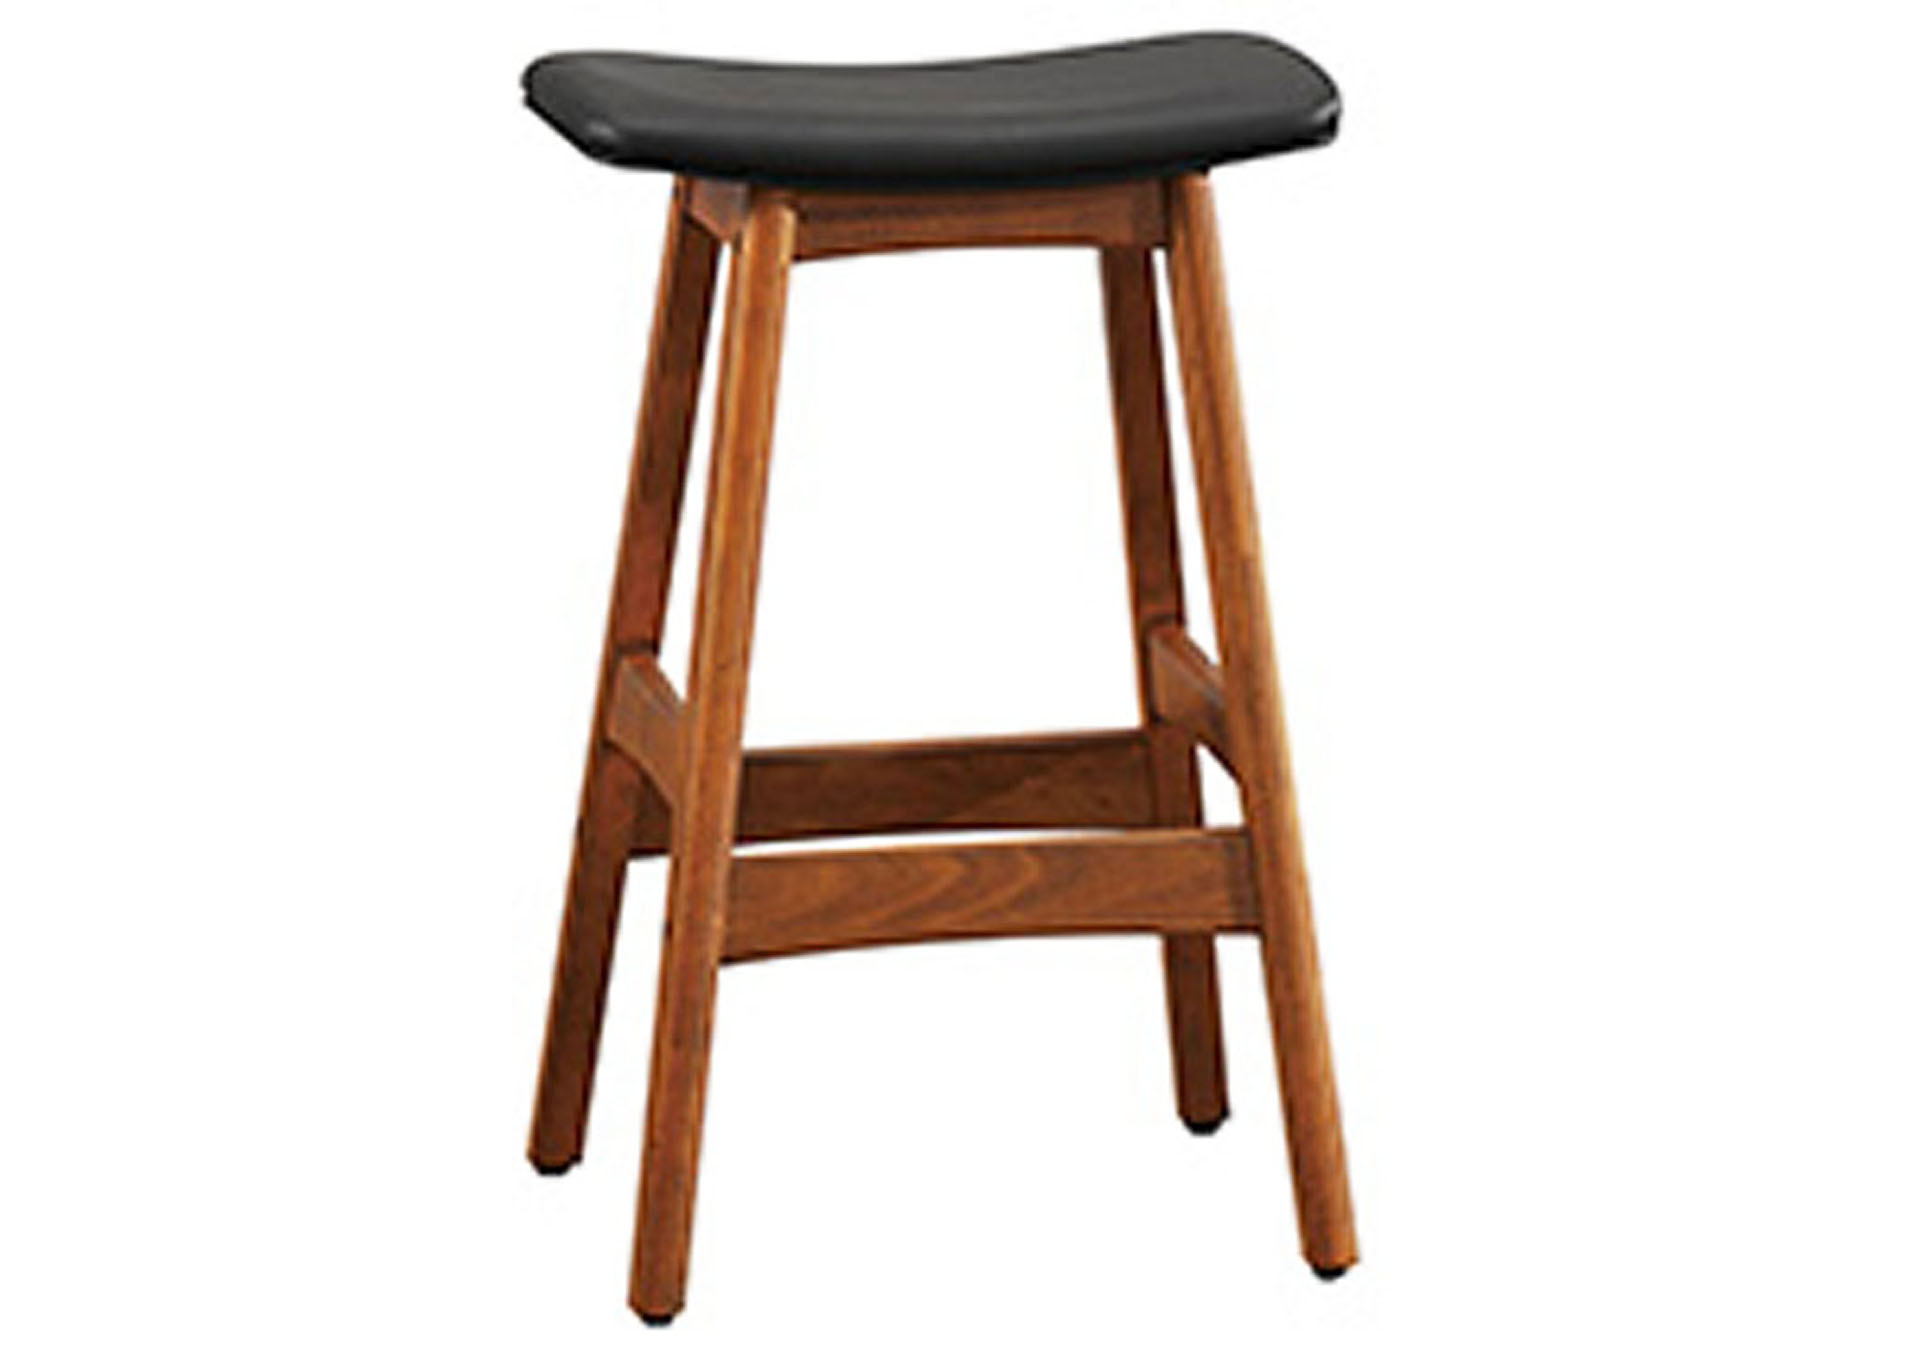 Black Counter Height Stool,Homelegance